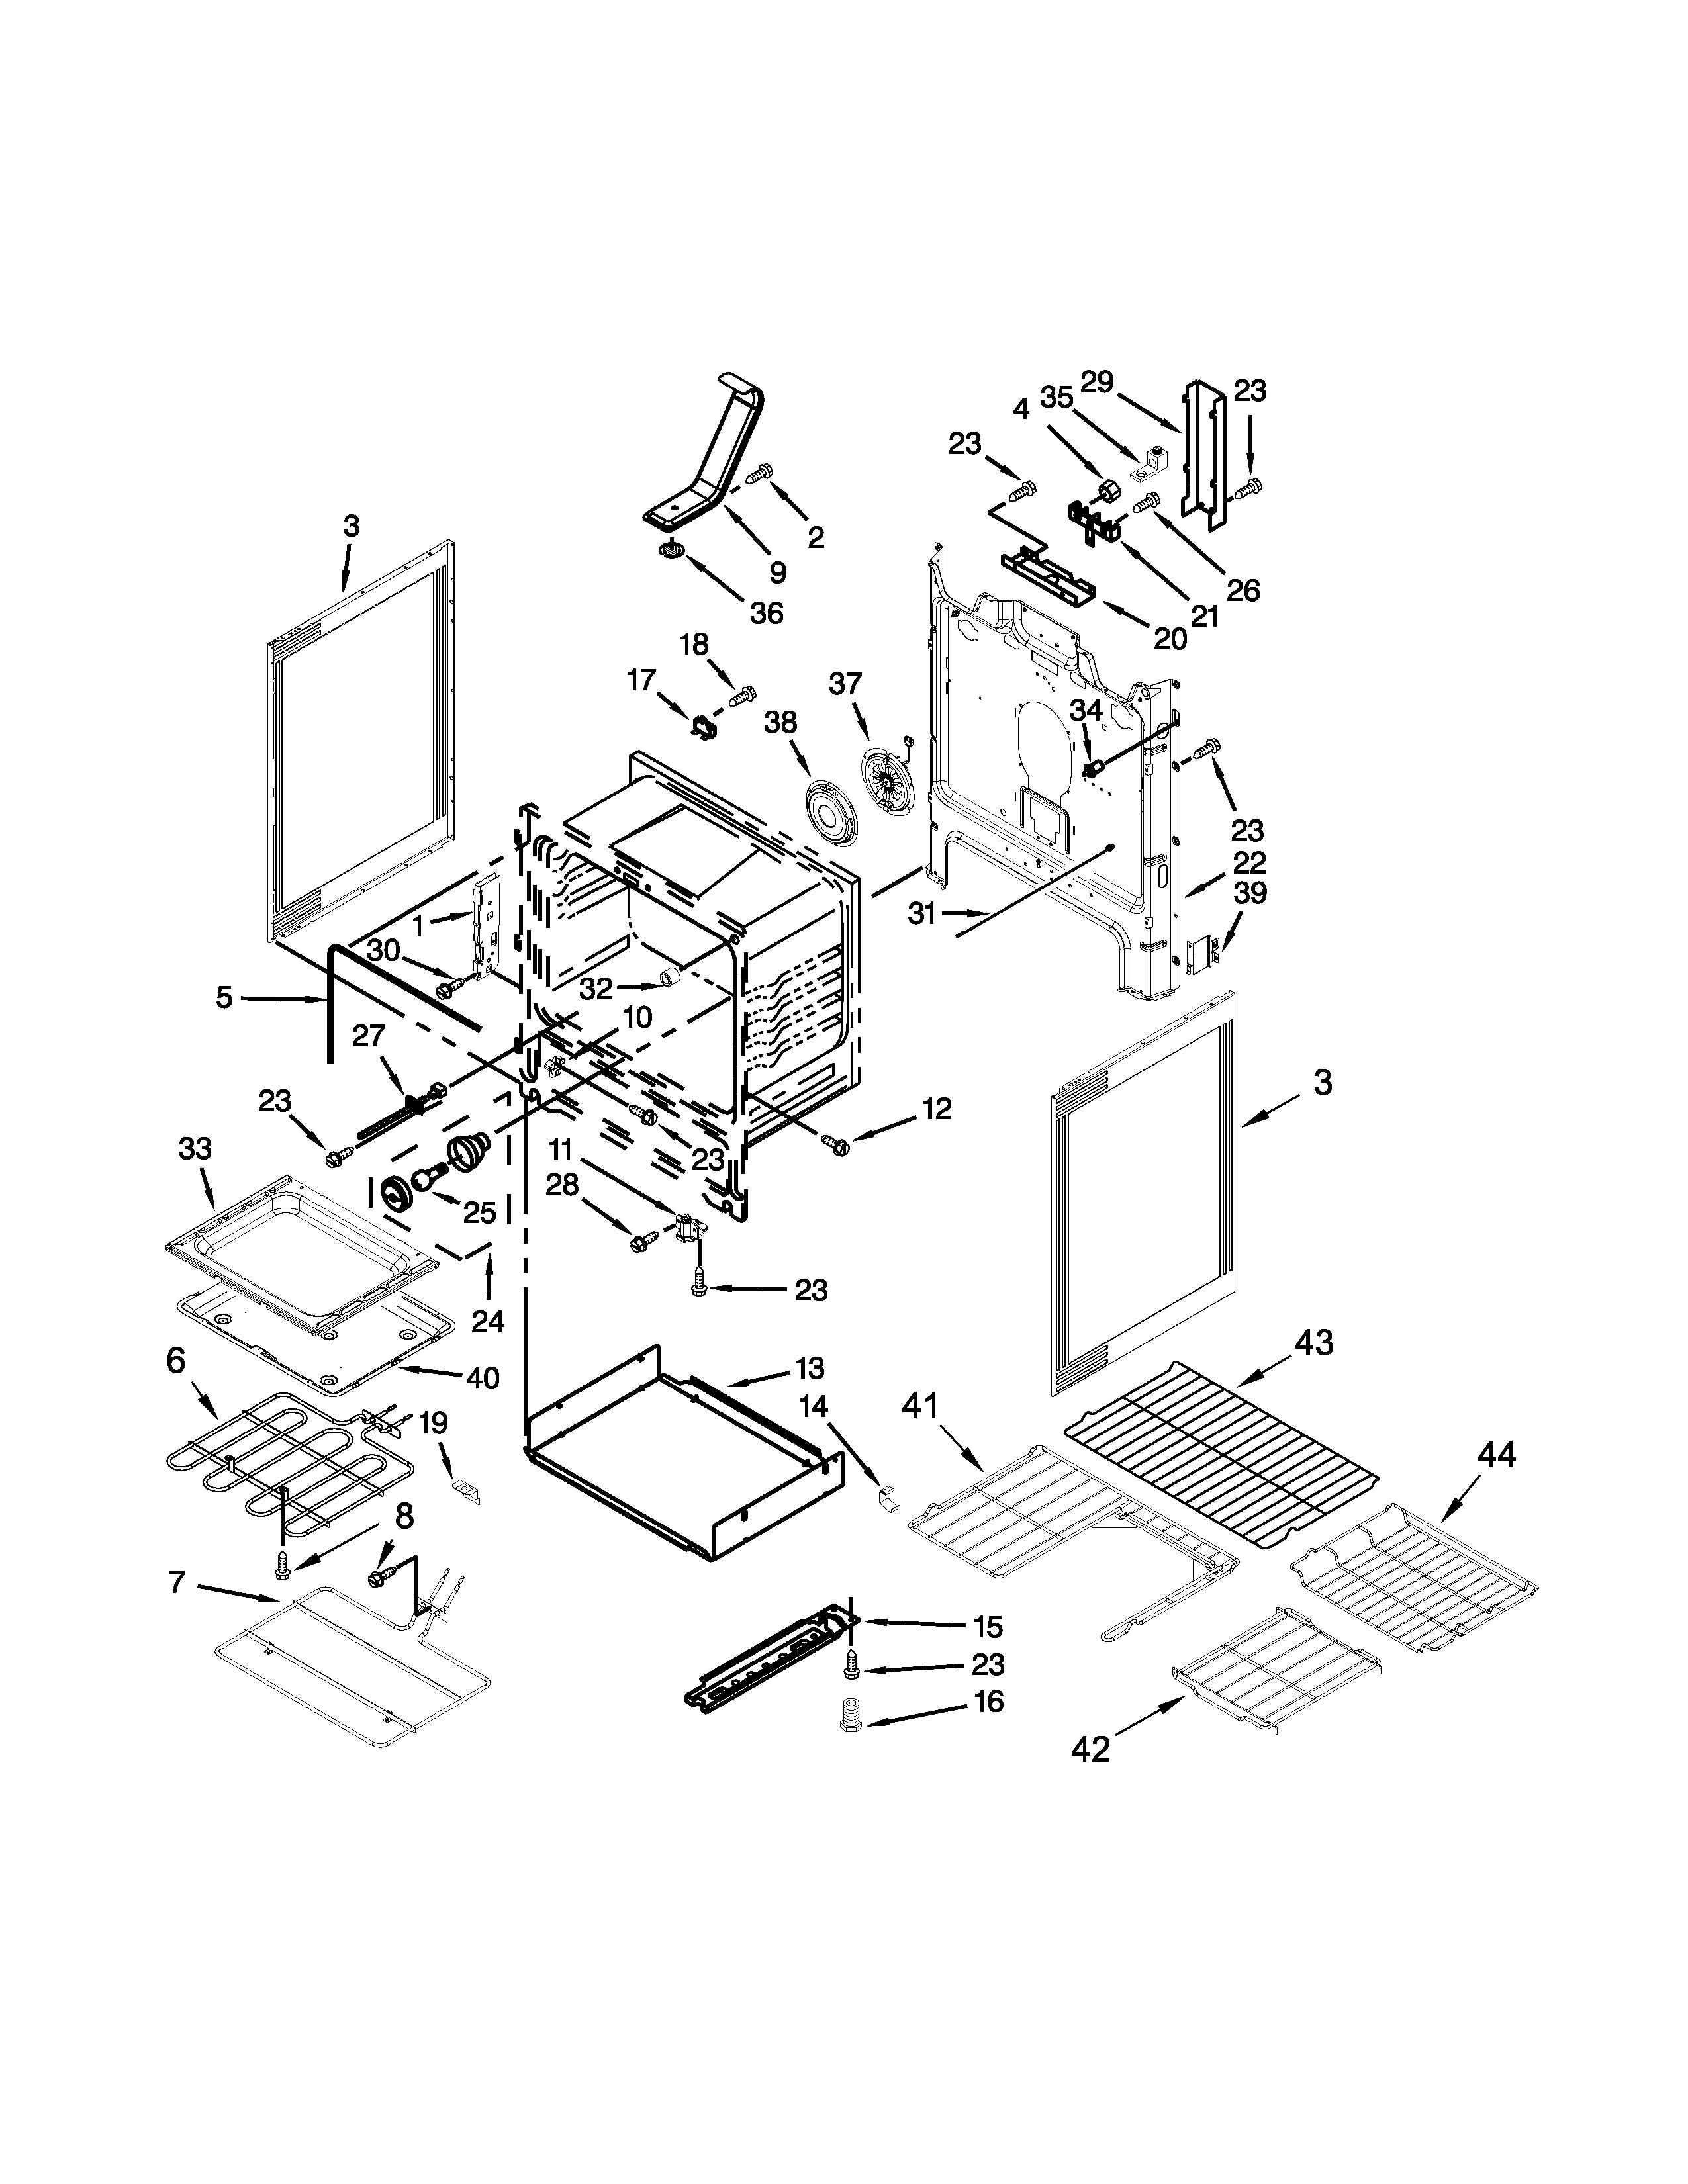 Whirlpool WFE710H0AS1 chassis parts diagram